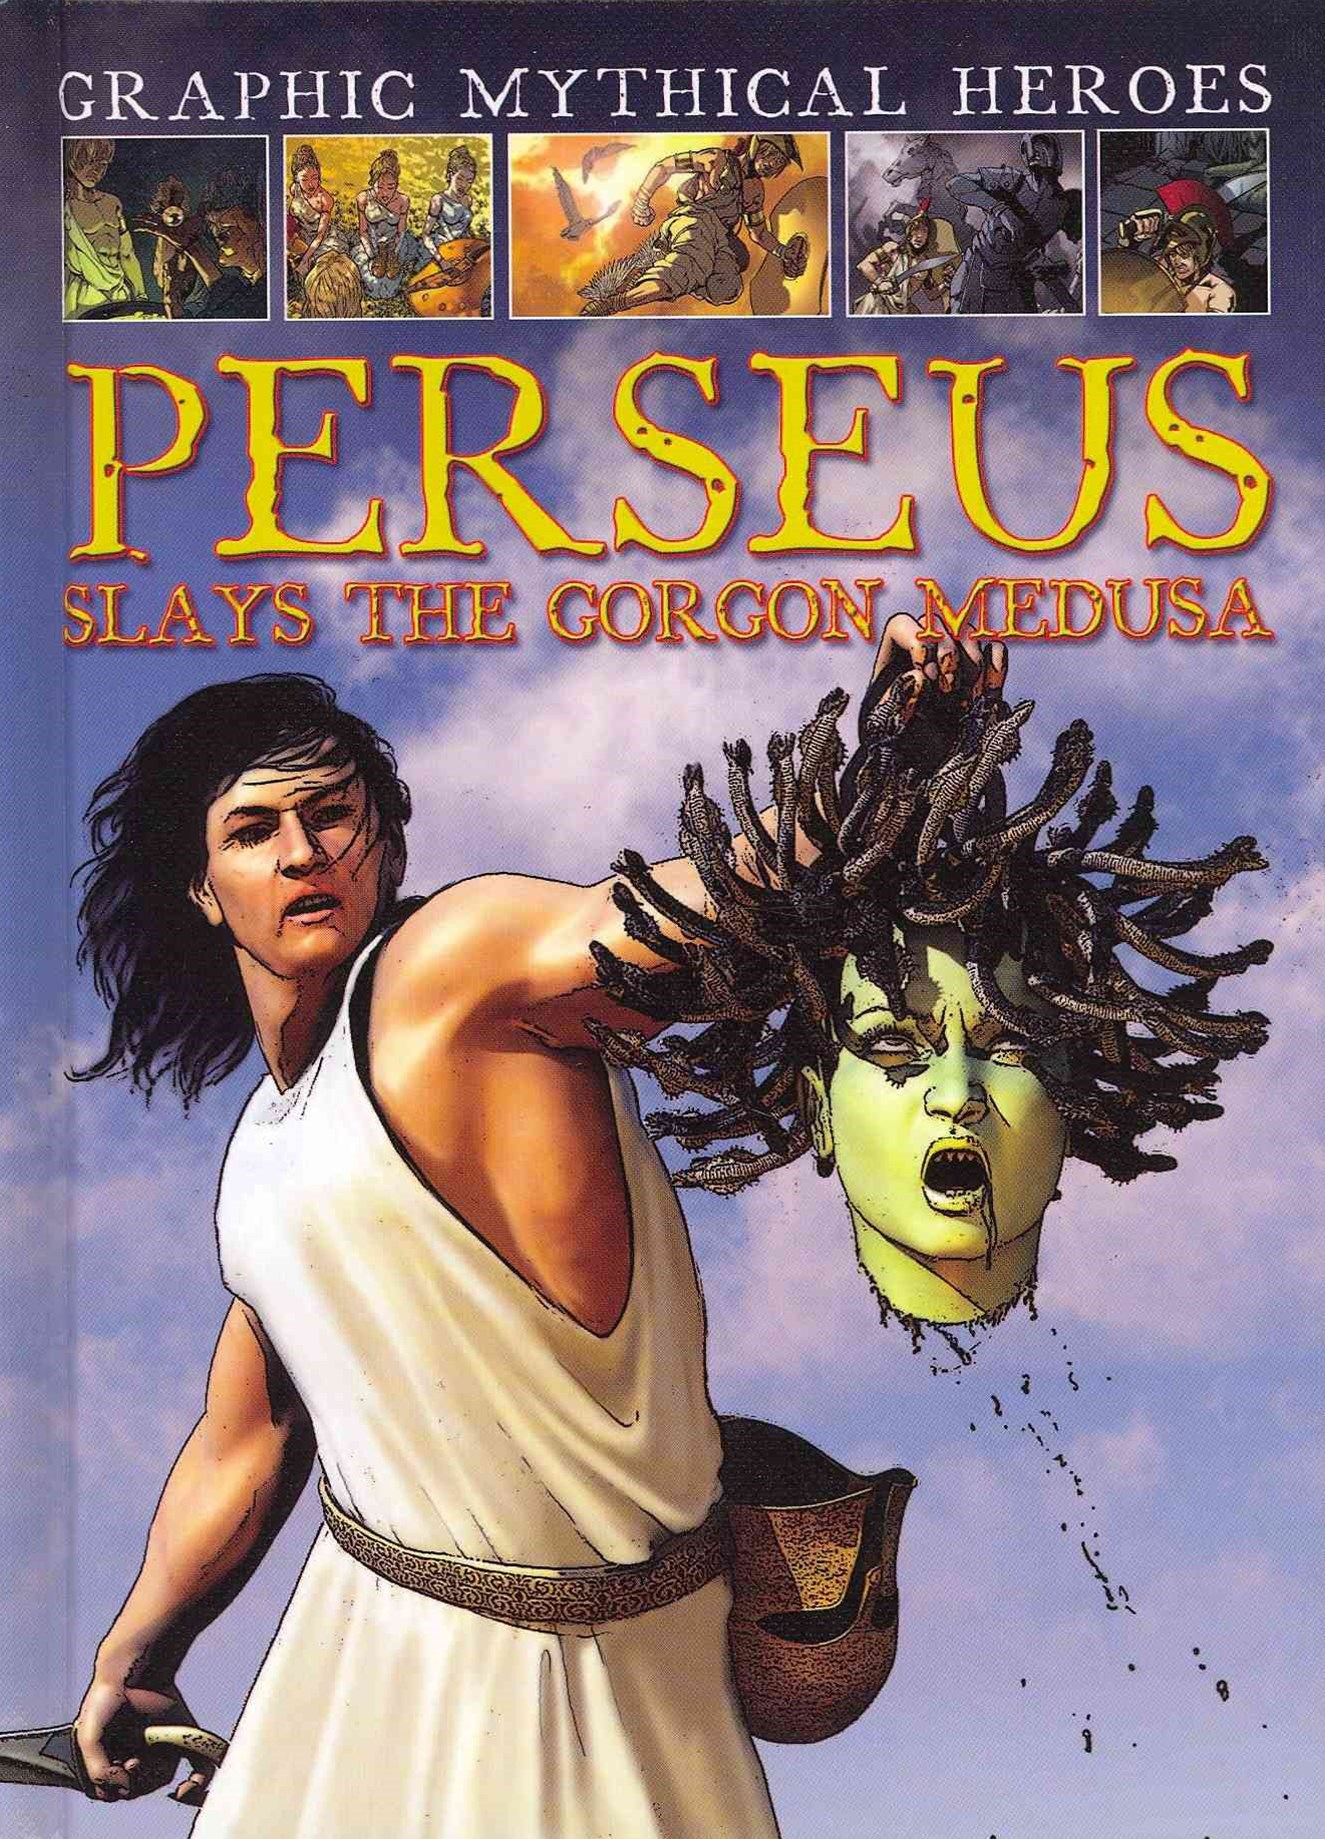 Perseus Slays the Gorgon Medusa